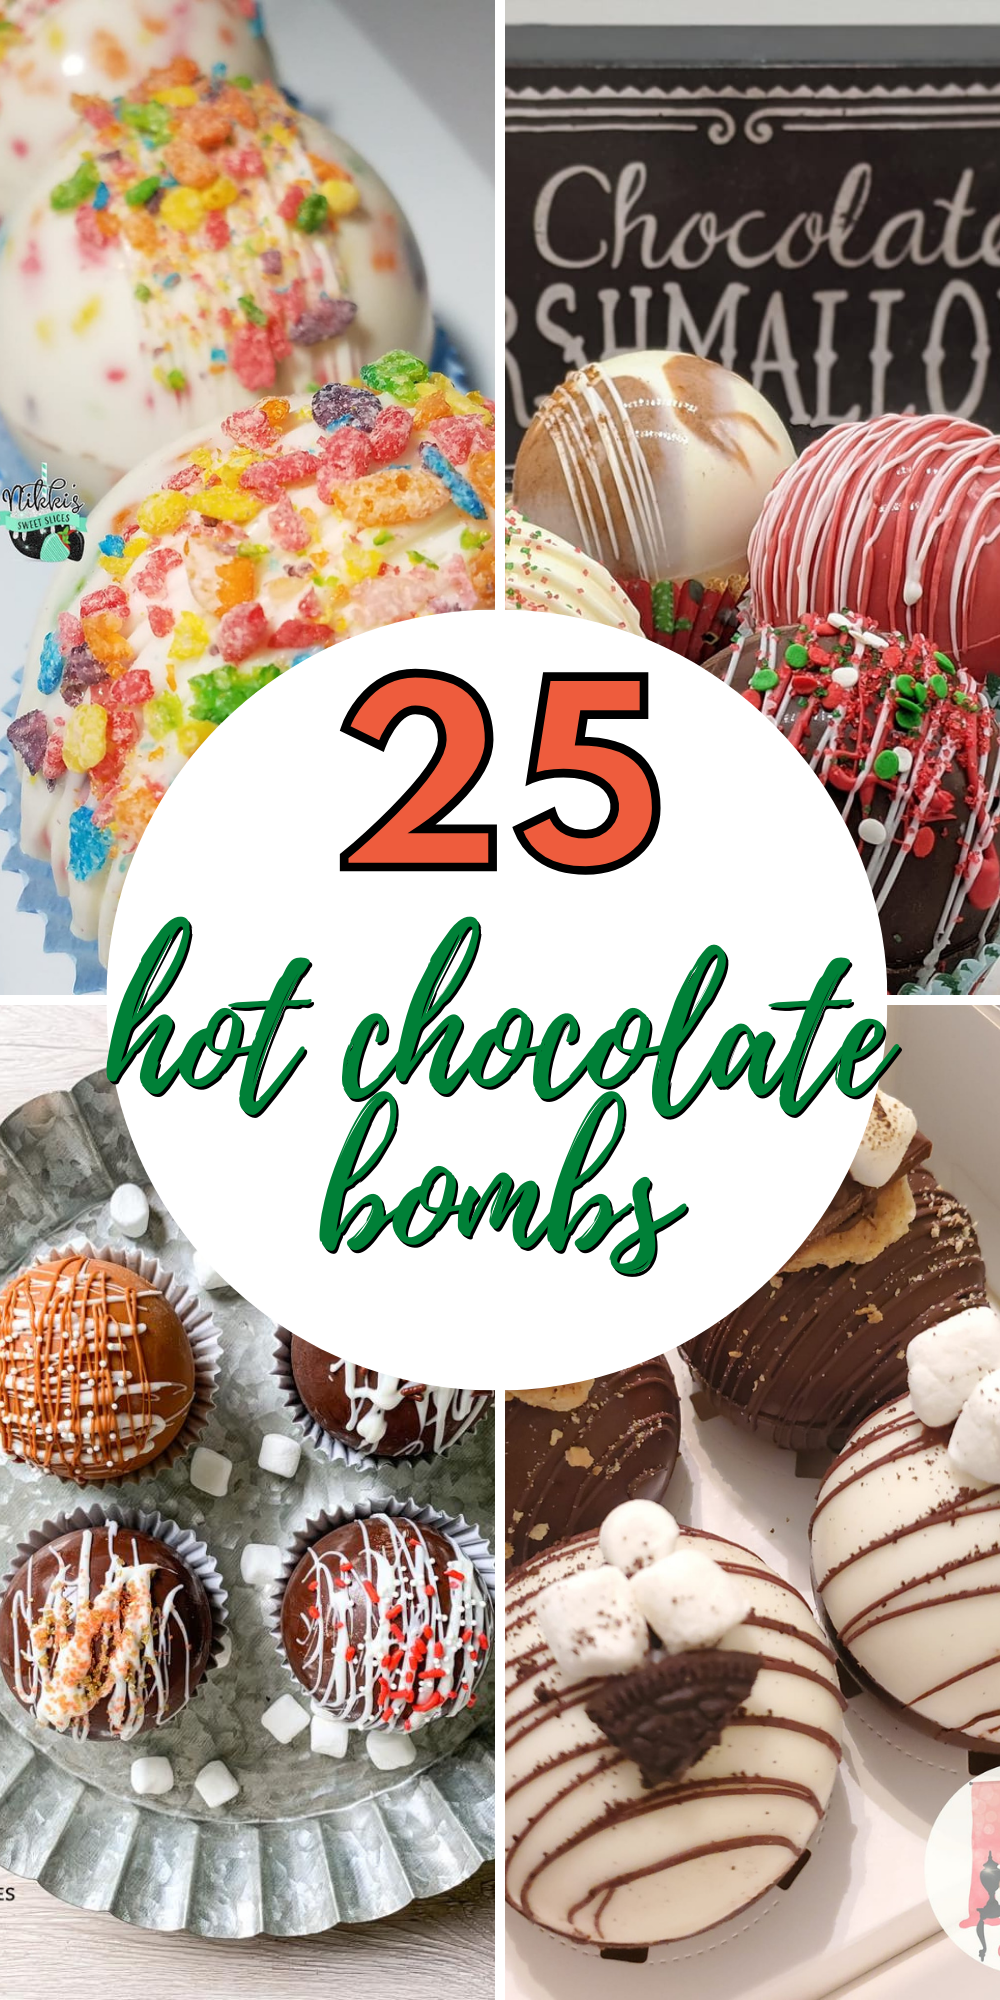 25 Hot Chocolate Bomb Flavors to Make